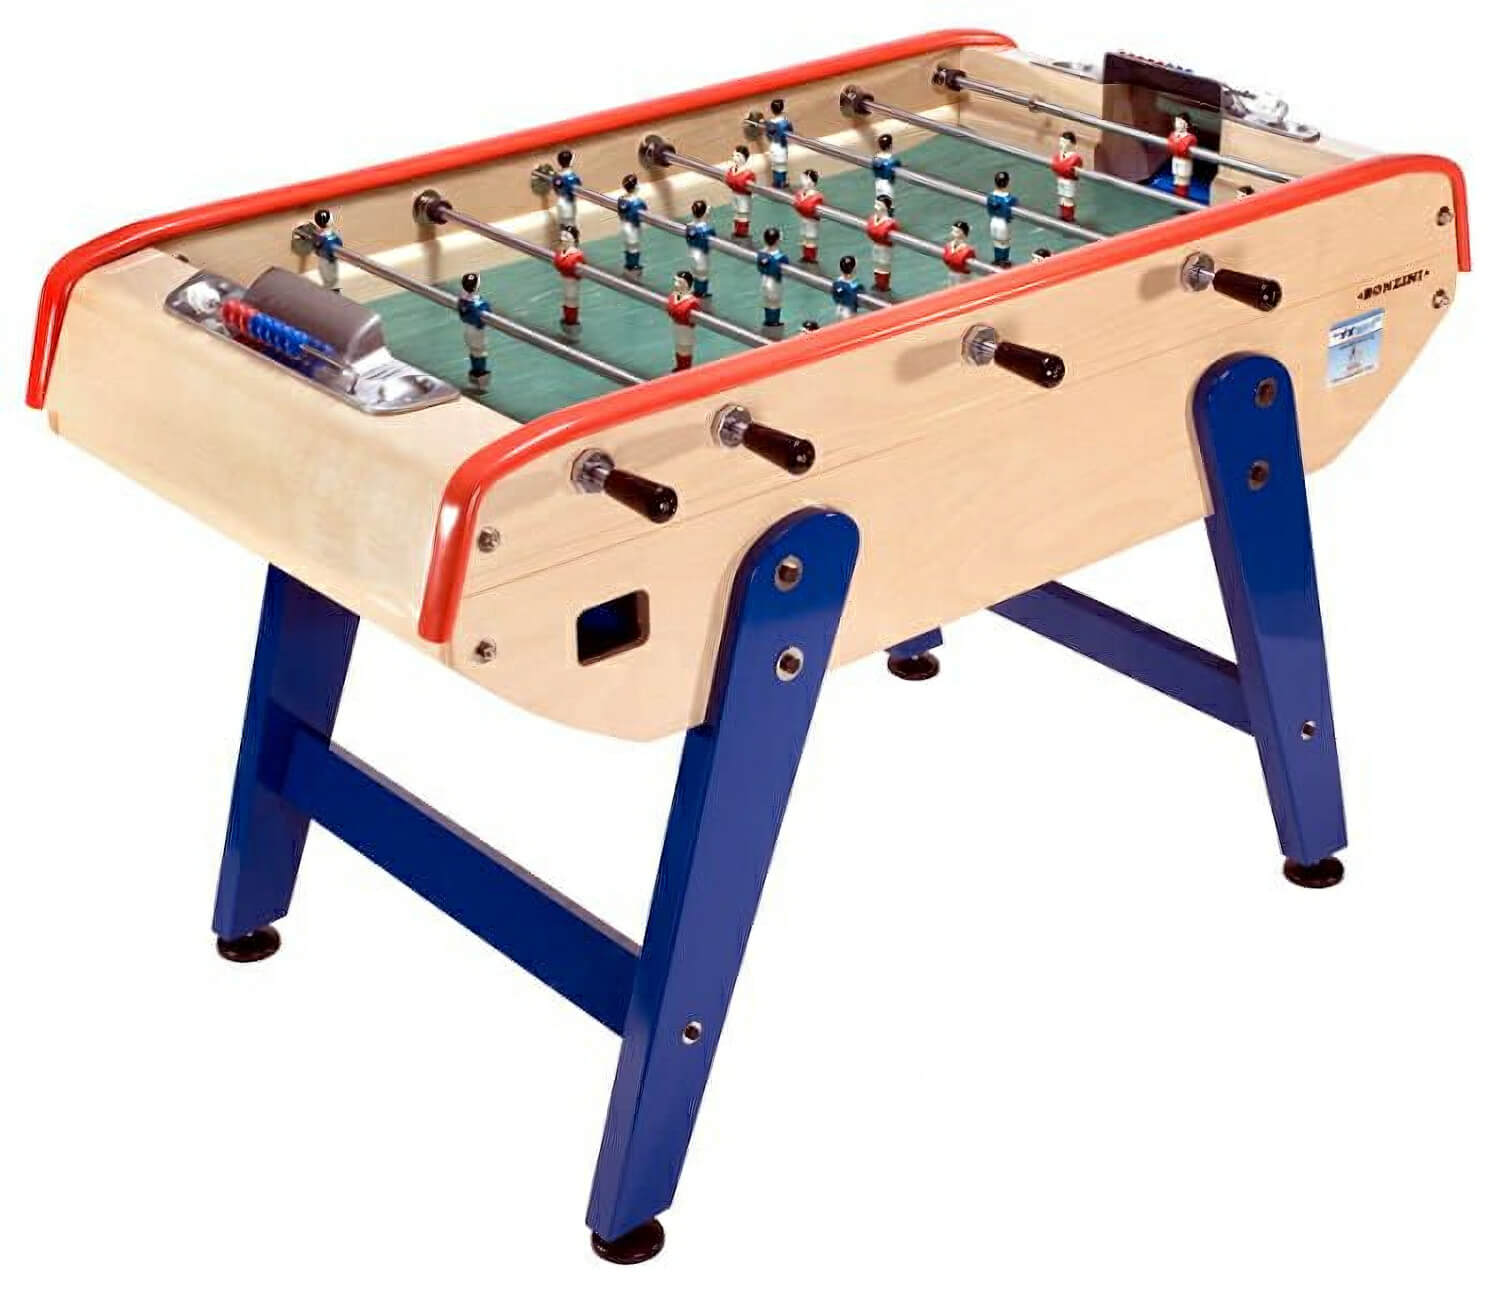 Bonzini b90 itsf competition football table liberty games - Baby foot bonzini exterieur ...